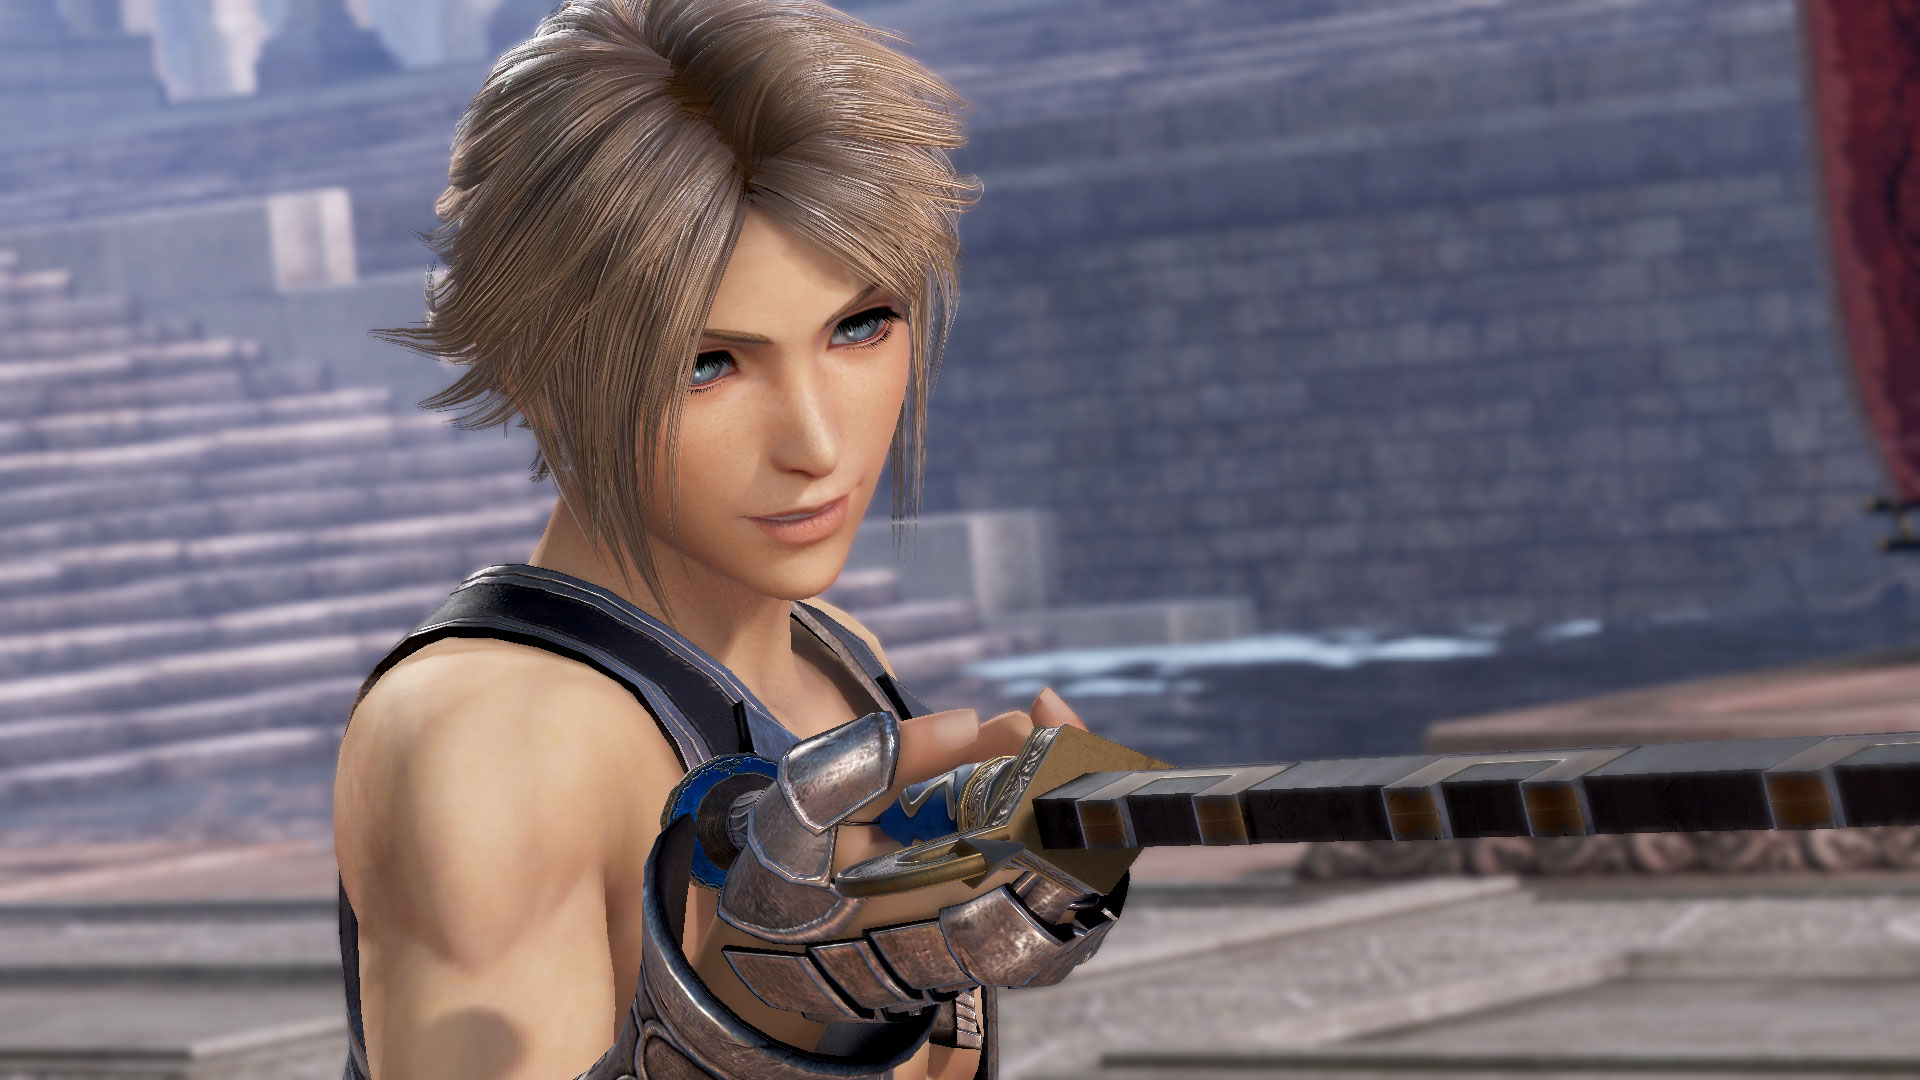 http://www.jp.square-enix.com/dffnt/assets/images/character/vaan/01.jpg